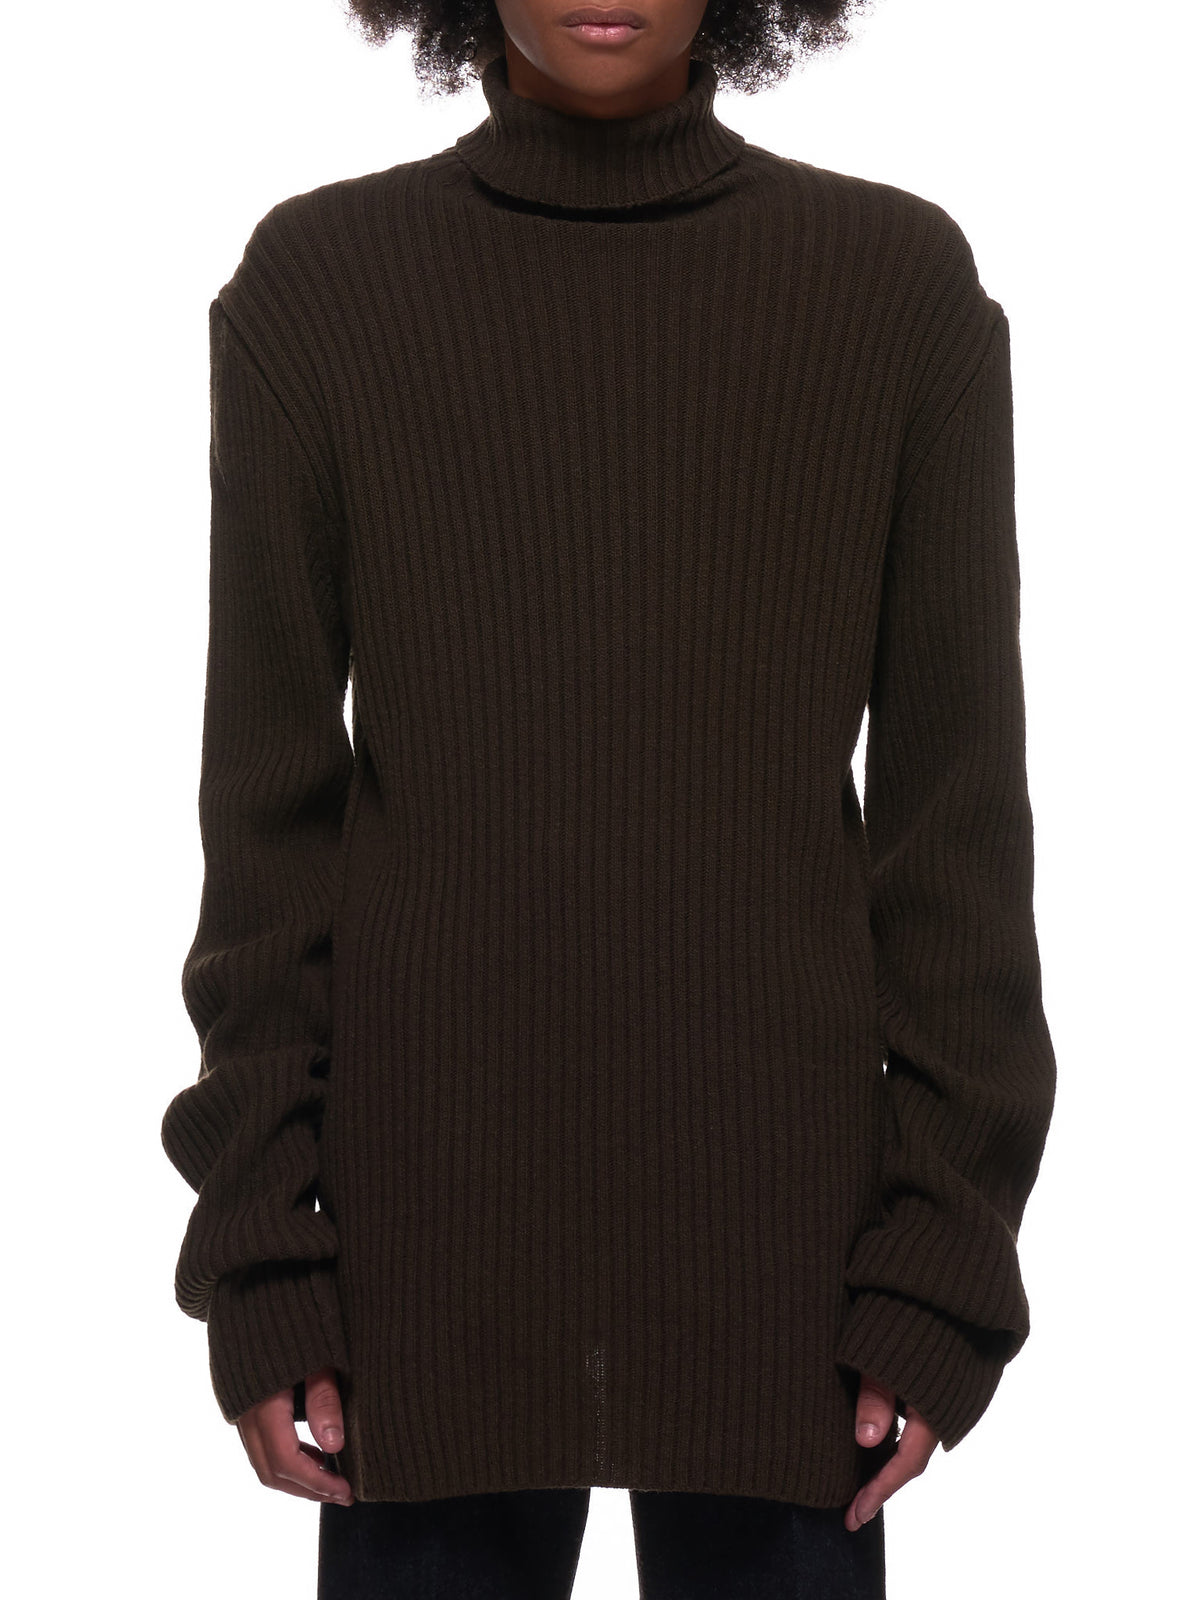 Knitted Turtleneck Sweater (2002-4012-250-049-KHAKI)